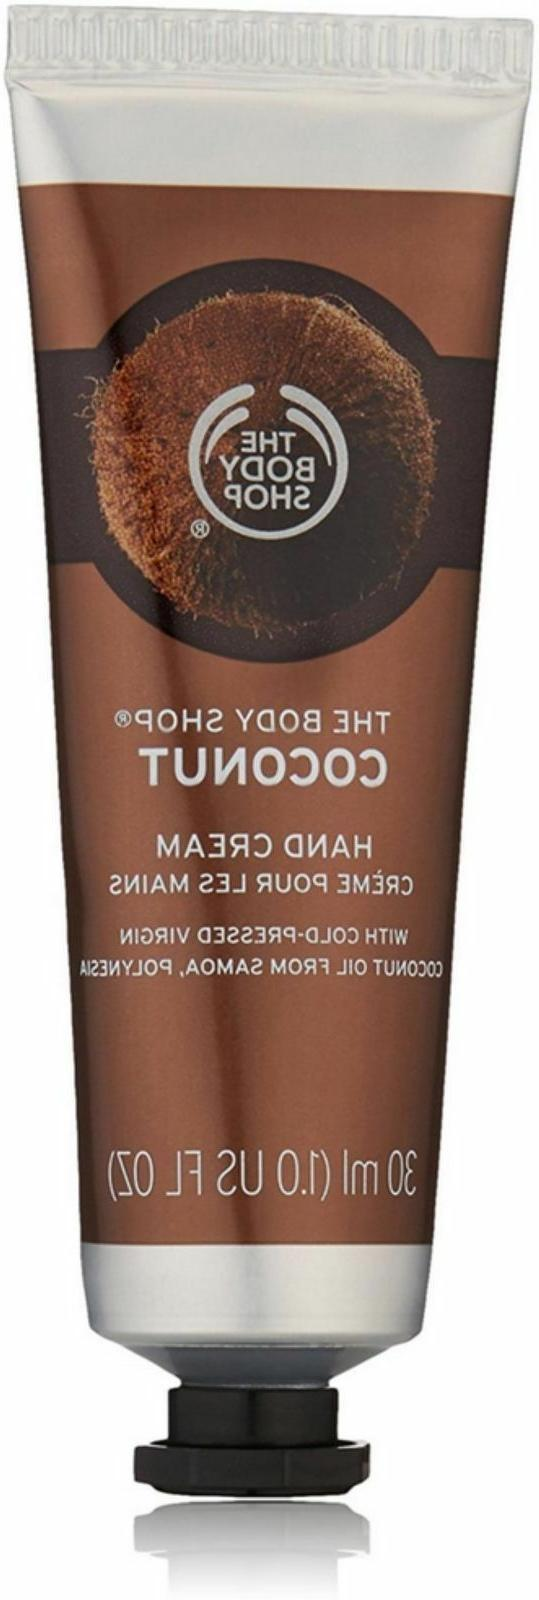 coconut hand cream 1 oz